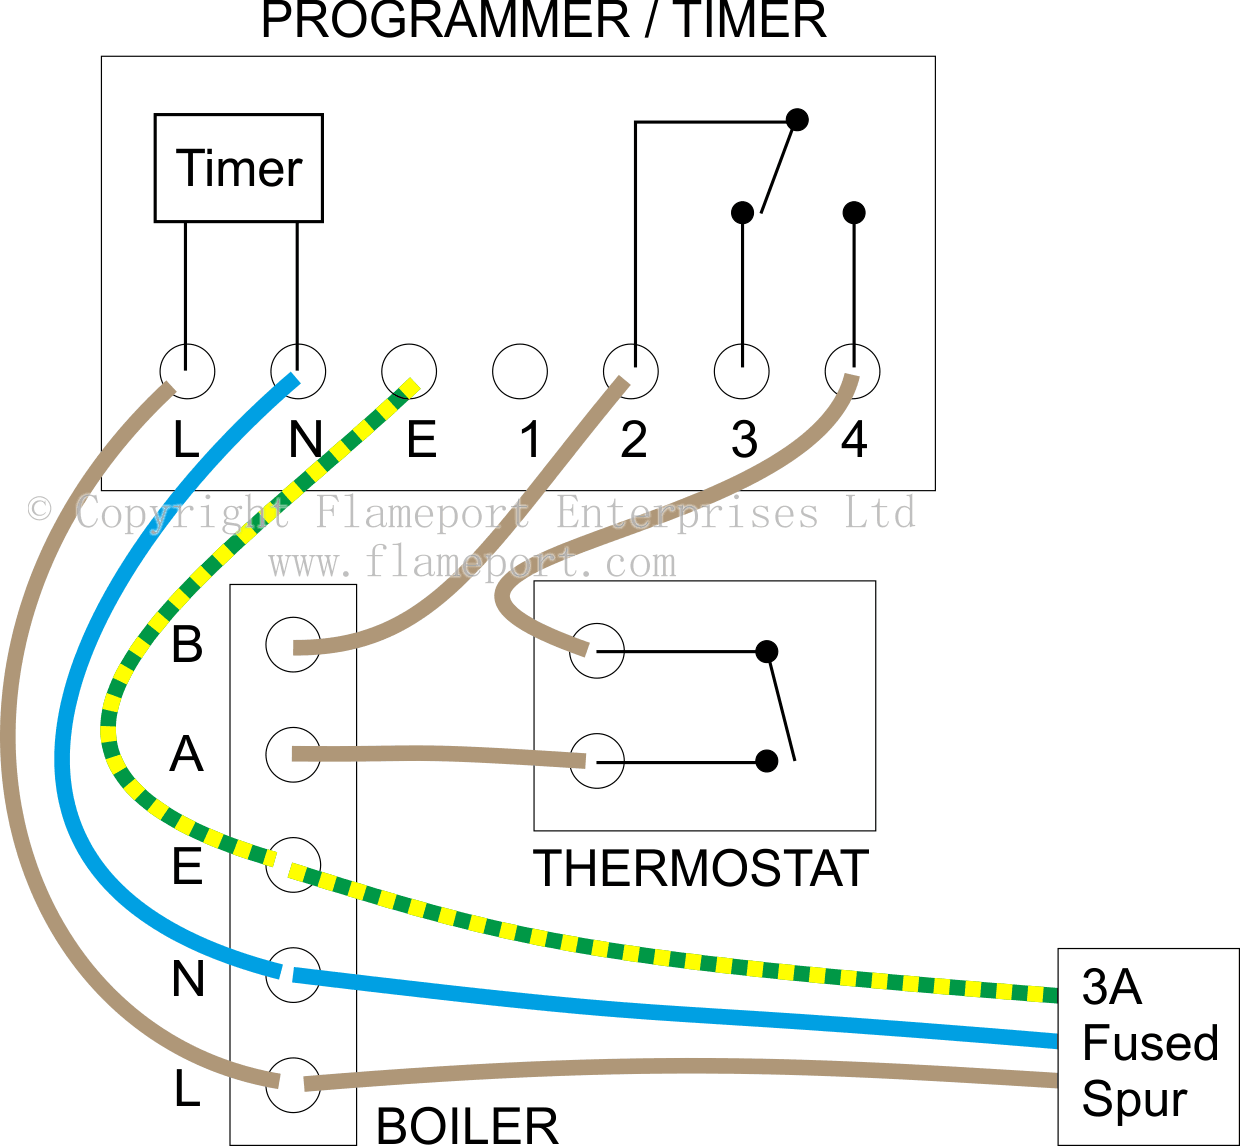 hight resolution of external programmers for combination boilers wiring a boiler aquastat for home heat system wiring a boiler